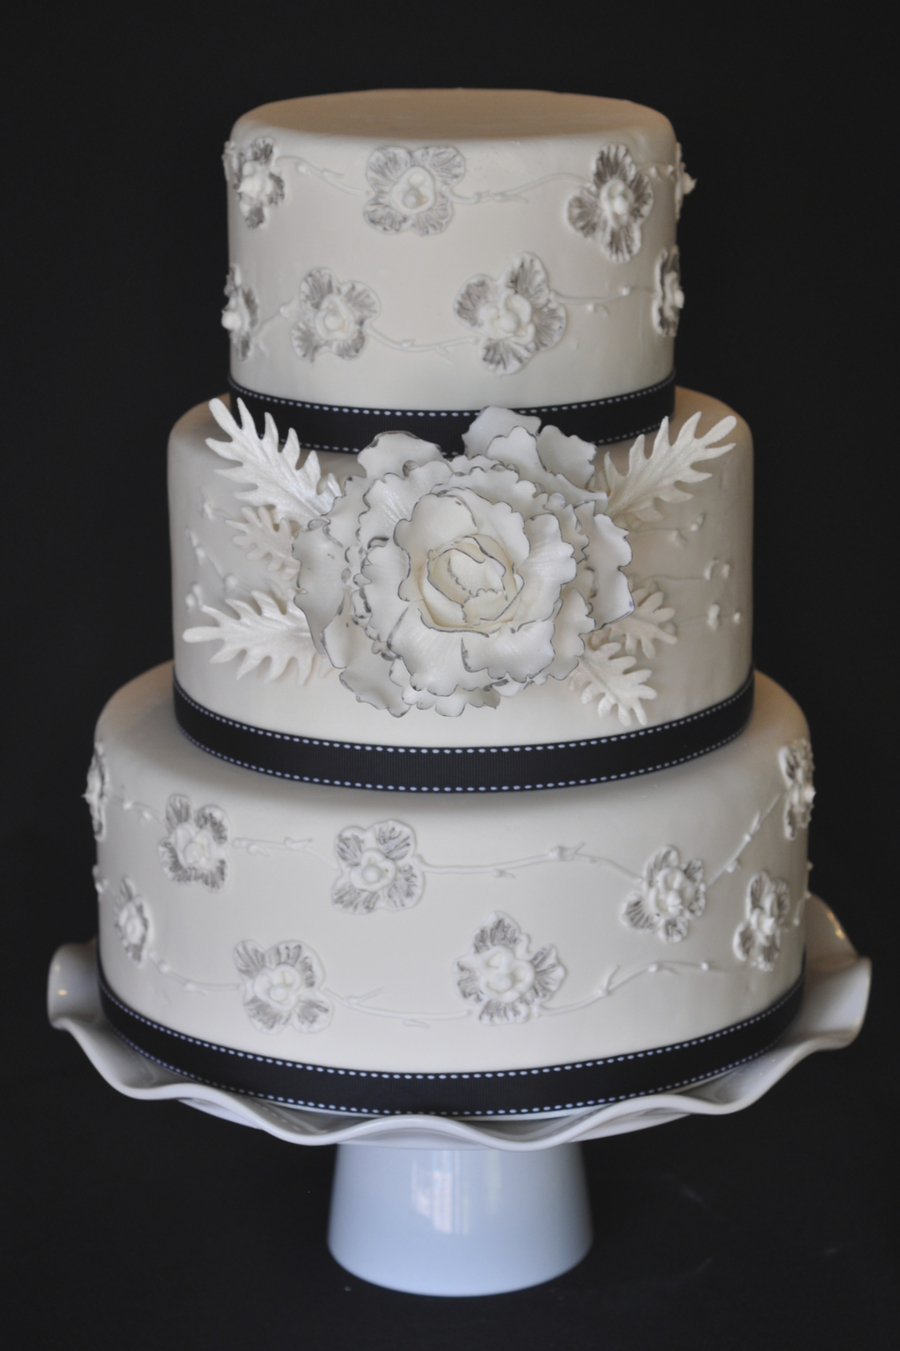 Fondant Cake With Brush Embroidery And Gum Paste Peony Edged In Silver on Cake Central